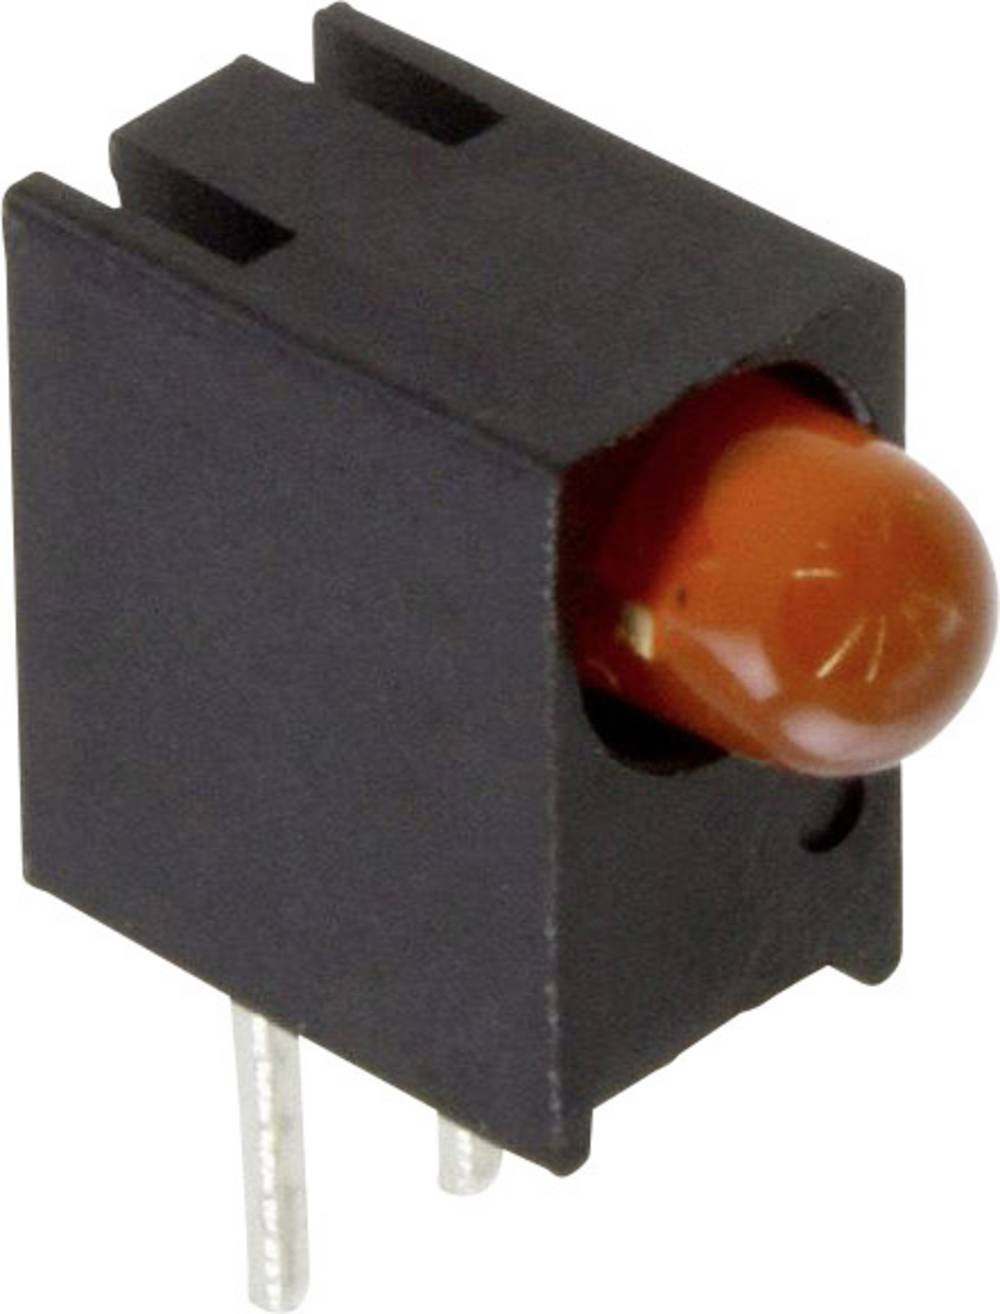 LED-komponent Dialight (L x B x H) 10.79 x 8.89 x 4.32 mm Orange